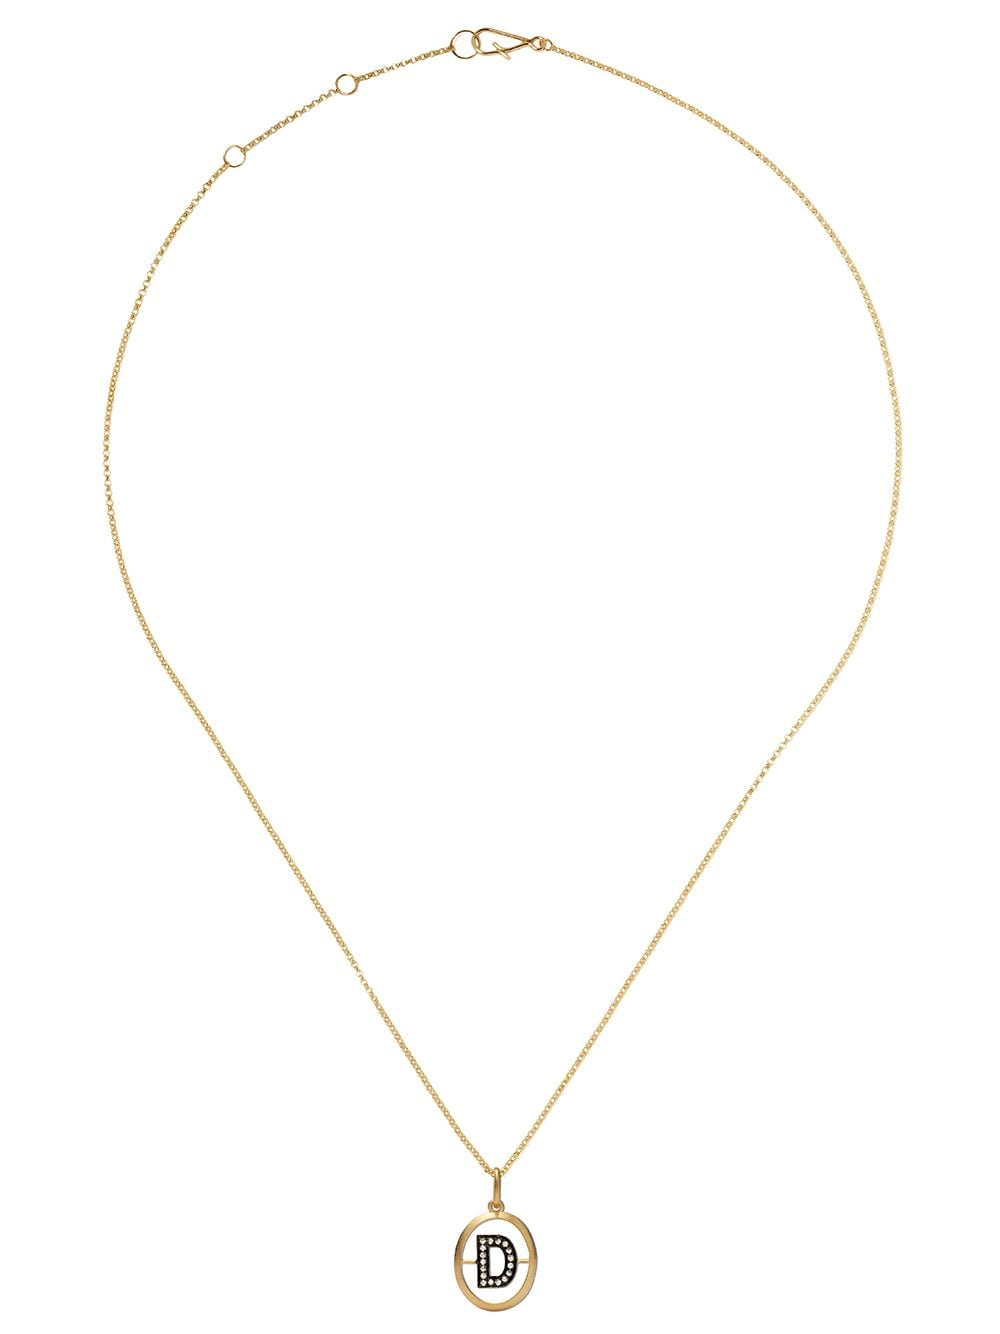 Annoushka 18kt yellow gold diamond initial D necklace - 18ct Yellow Gold von Annoushka